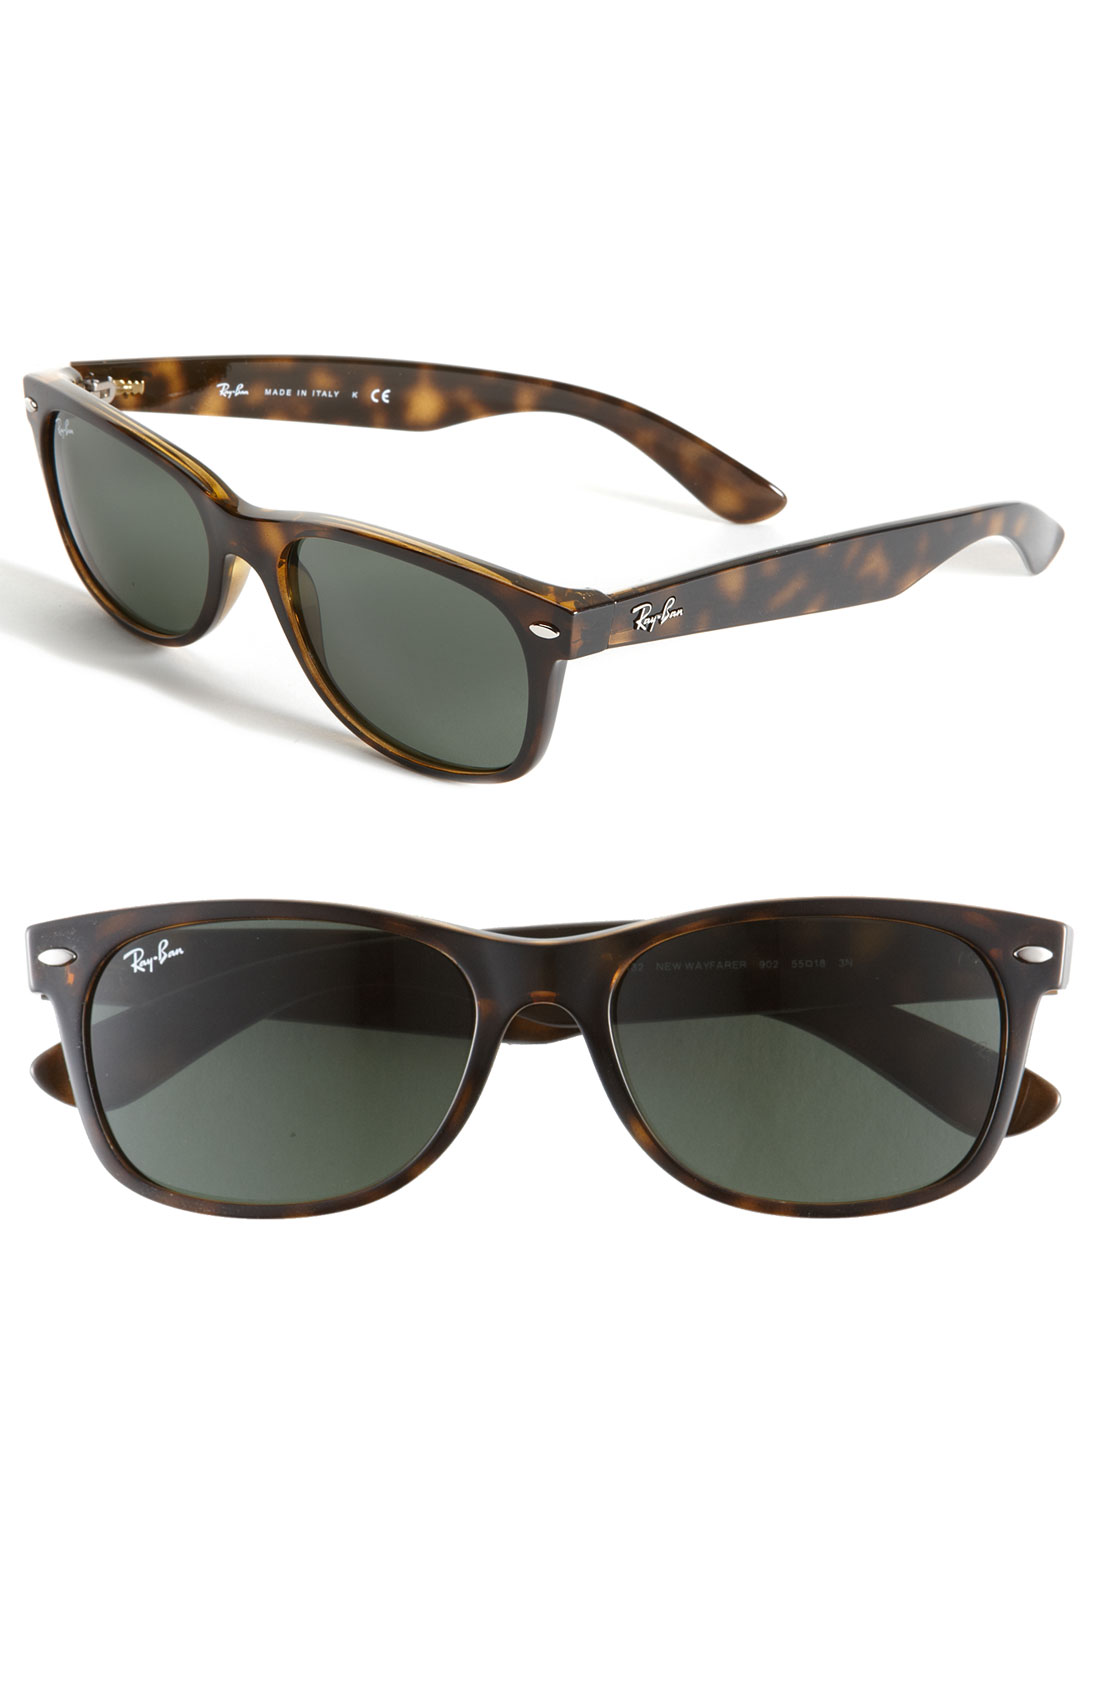 Wayfarer Sunglasses for Women at Macy's come in all styles. Shop Women's Wayfarer Sunglasses from Sunglass Hut at Macy's! Free Shipping available!